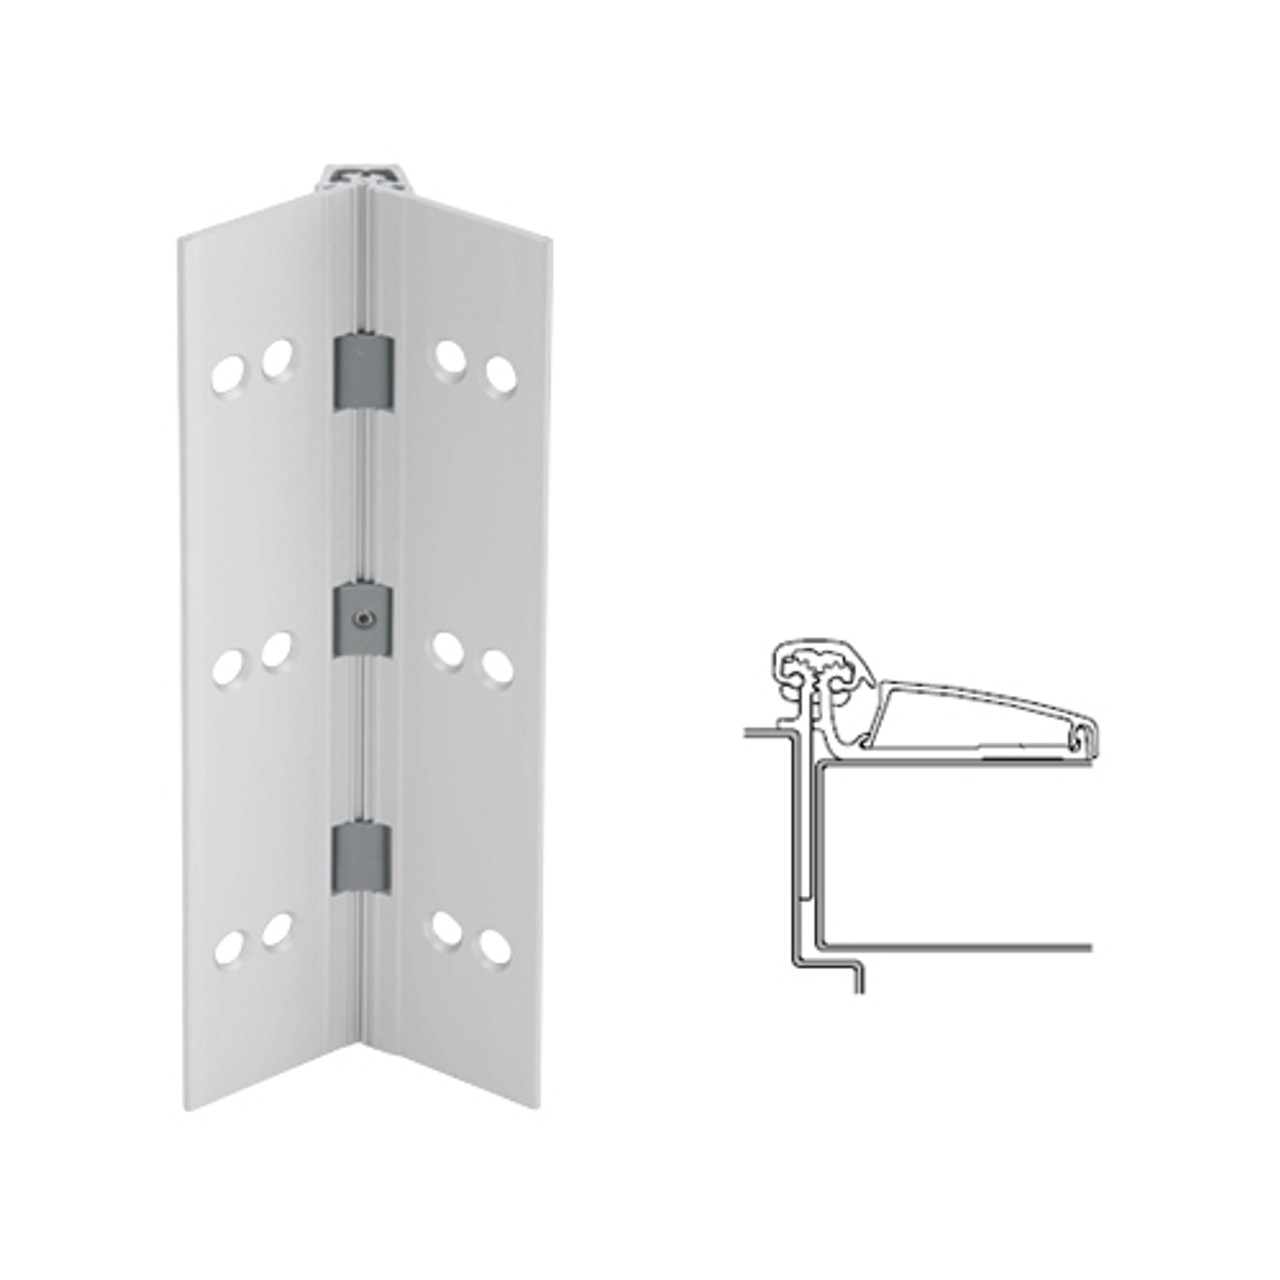 045XY-US28-83-WD IVES Adjustable Half Surface Continuous Geared Hinges with Wood Screws in Satin Aluminum